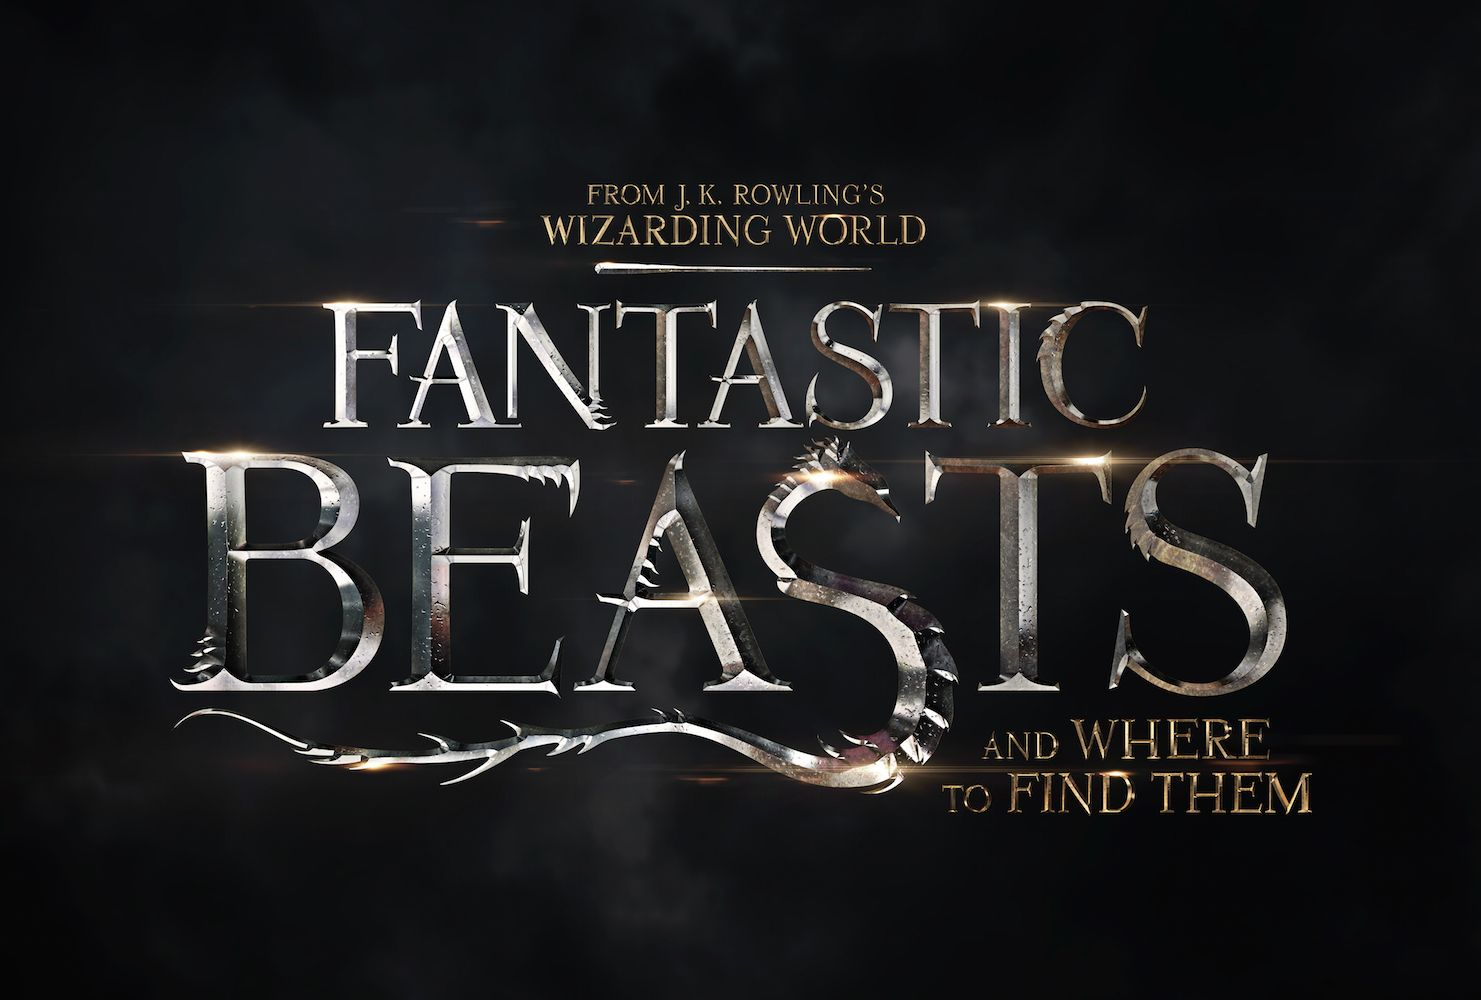 http://cdn.collider.com/wp-content/uploads/2015/11/fantastic-beasts-and-where-to-find-them-large.jpg